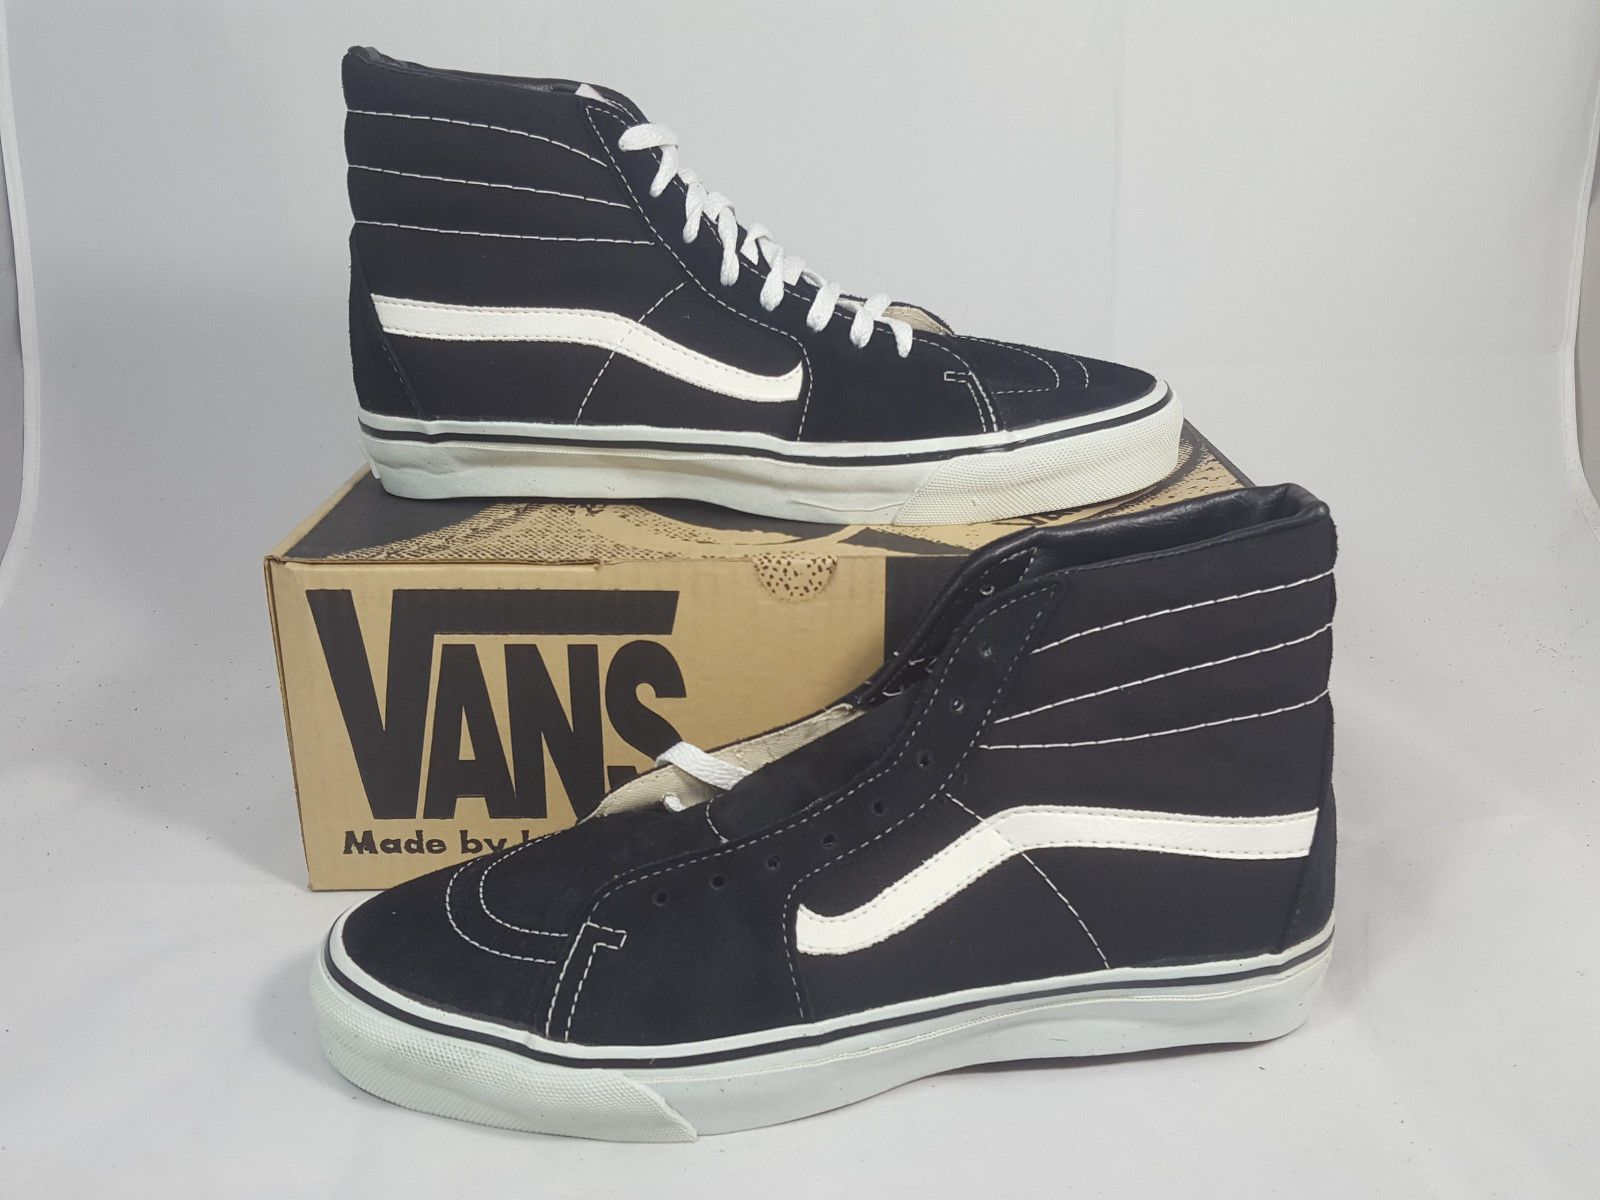 b72555d015 Vintage Vans shoes SK8 HI BLACK made in USA Men s Size 11 NOS Old Skool 80s